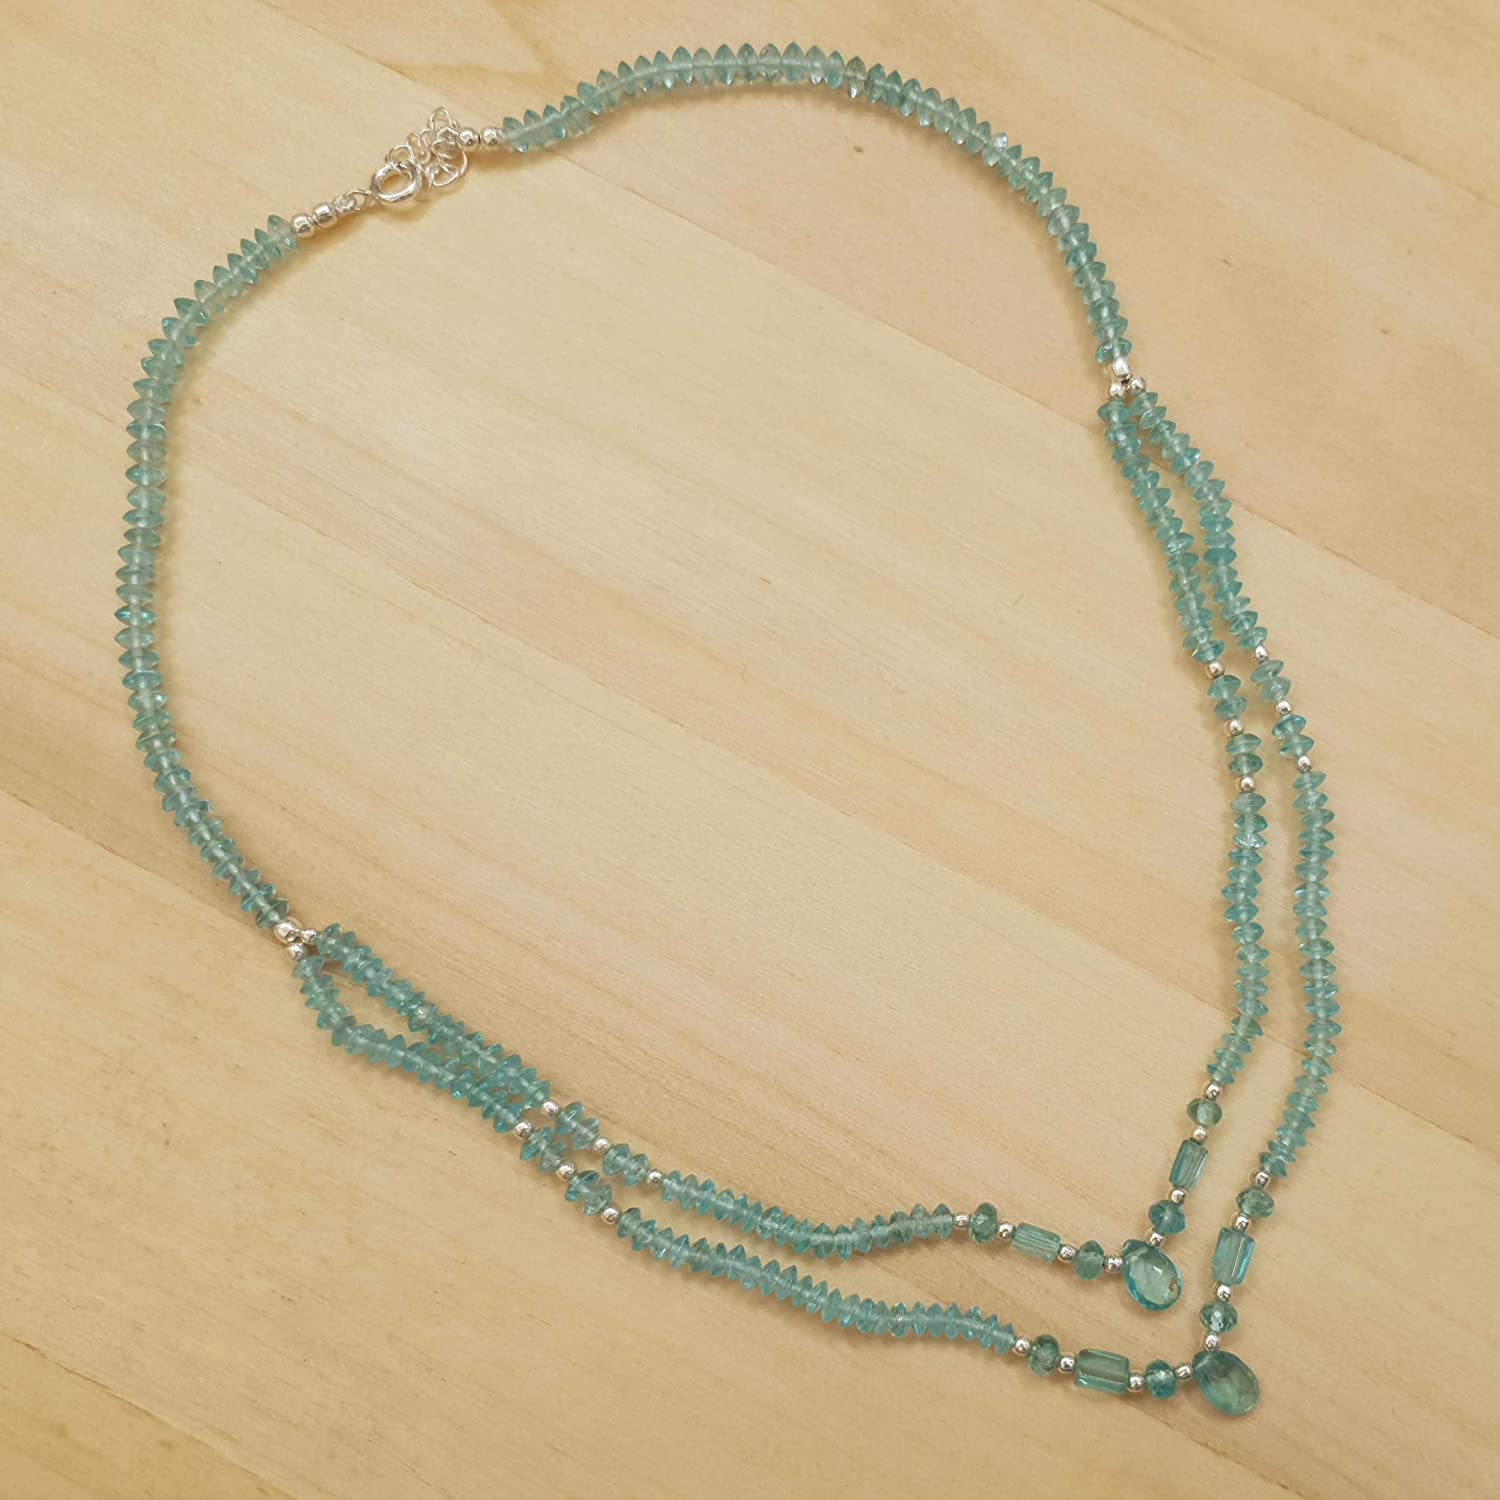 Blue Apatite Iolite Saucer Beads Necklace Strand Gift ideas for her September Birthday Jewelry Everyday Beaded Necklace